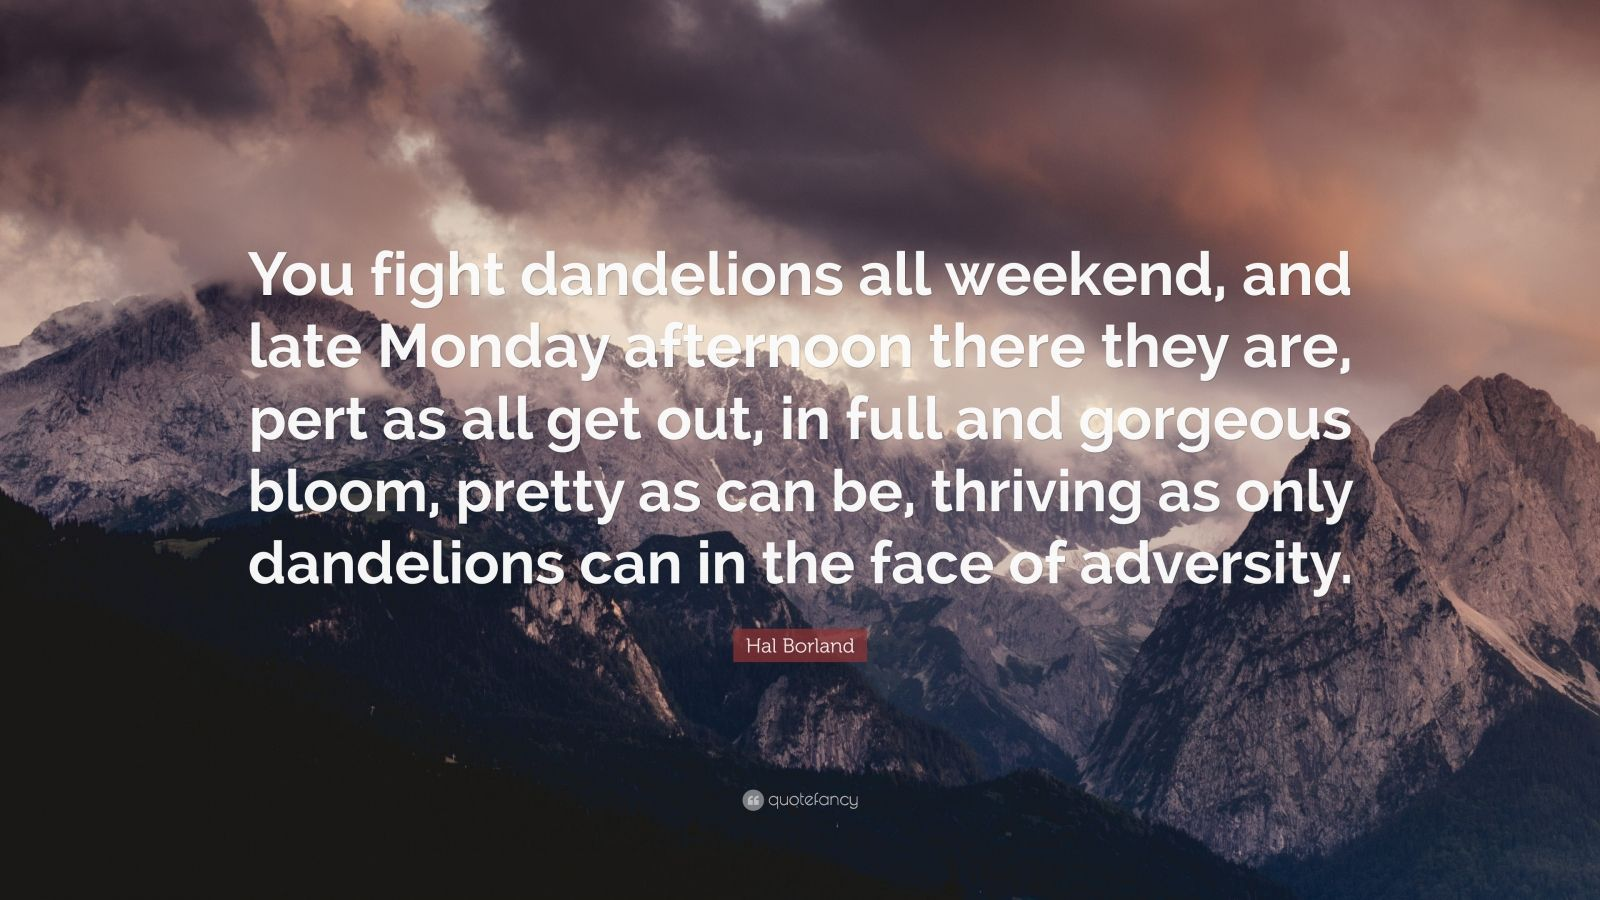 """Hal Borland Quote: """"You fight dandelions all weekend, and late Monday afternoon there they are, pert as all get out, in full and gorgeous bloom, pretty as can be, thriving as only dandelions can in the face of adversity."""""""